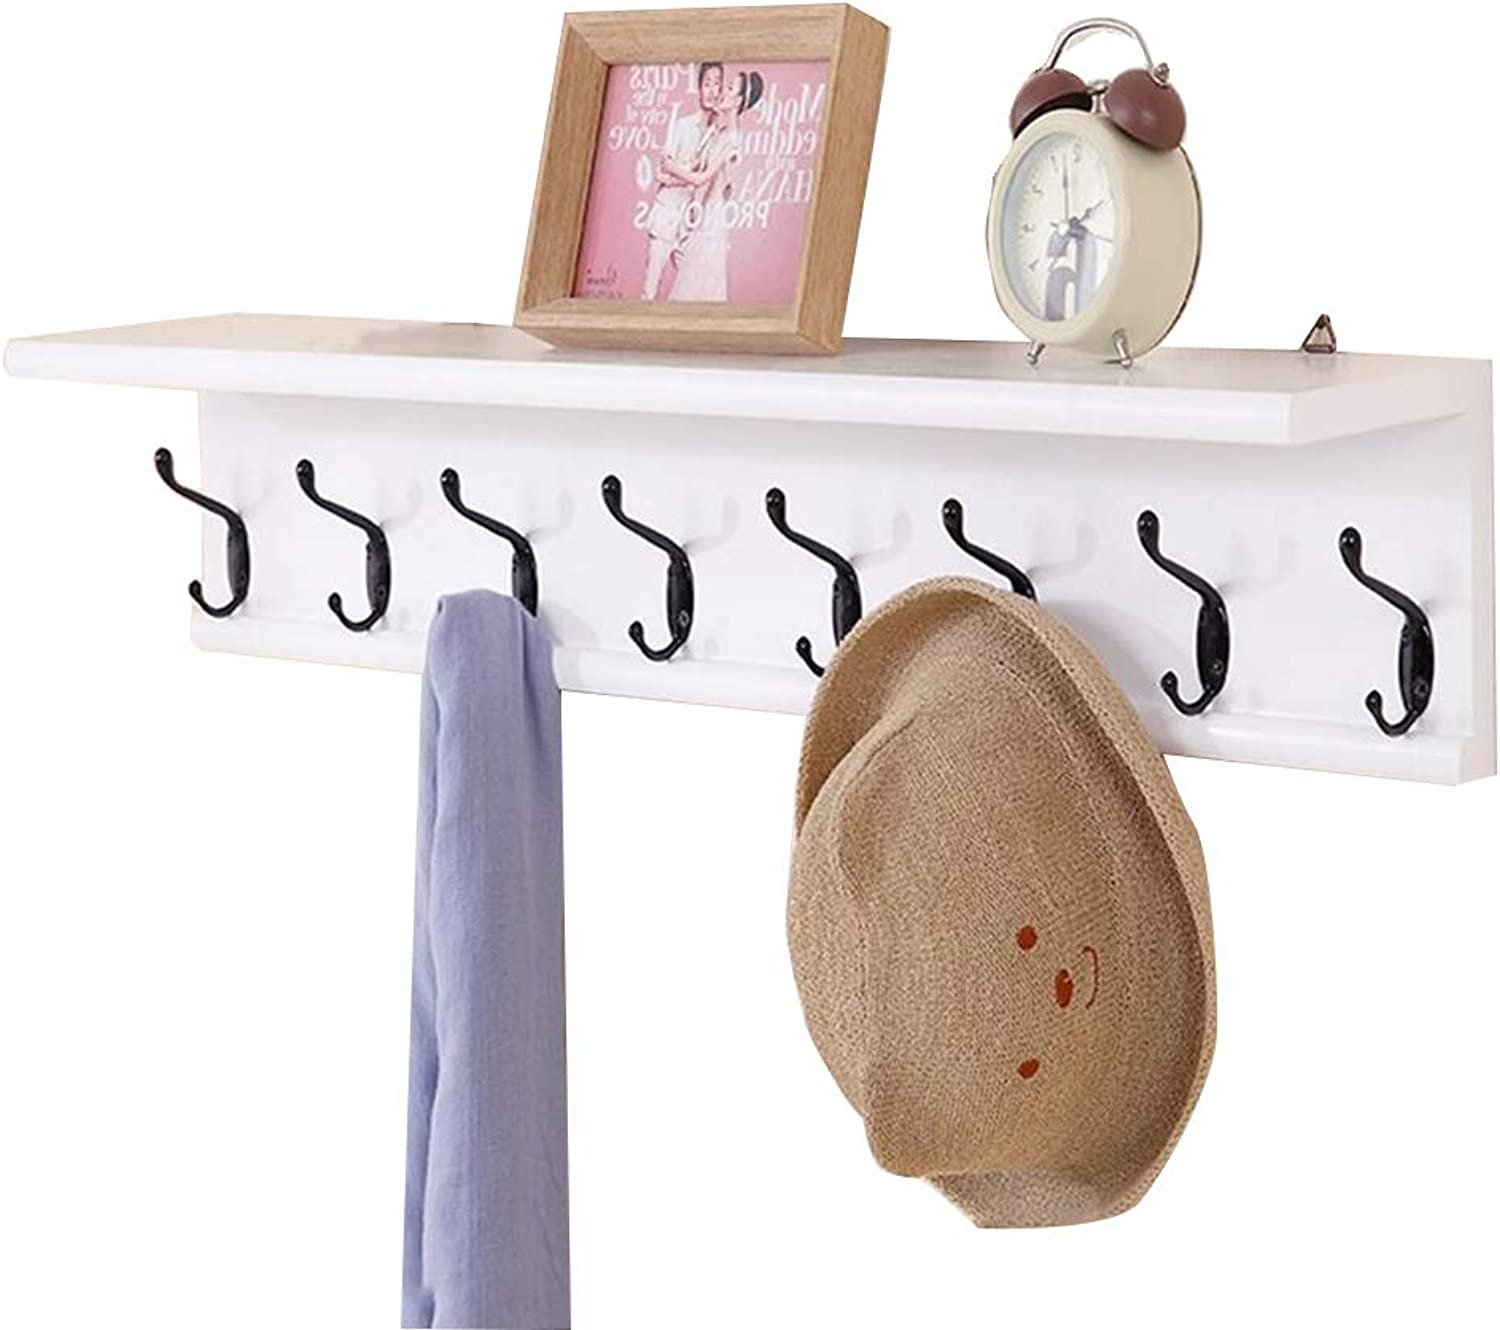 LIANGLIANG Wall Mounted Coat Rack The Top Can Hold Two Layer Hooks Solid Wood White 3 Kinds of Sizes are Optional (Size   80  15  15cm)